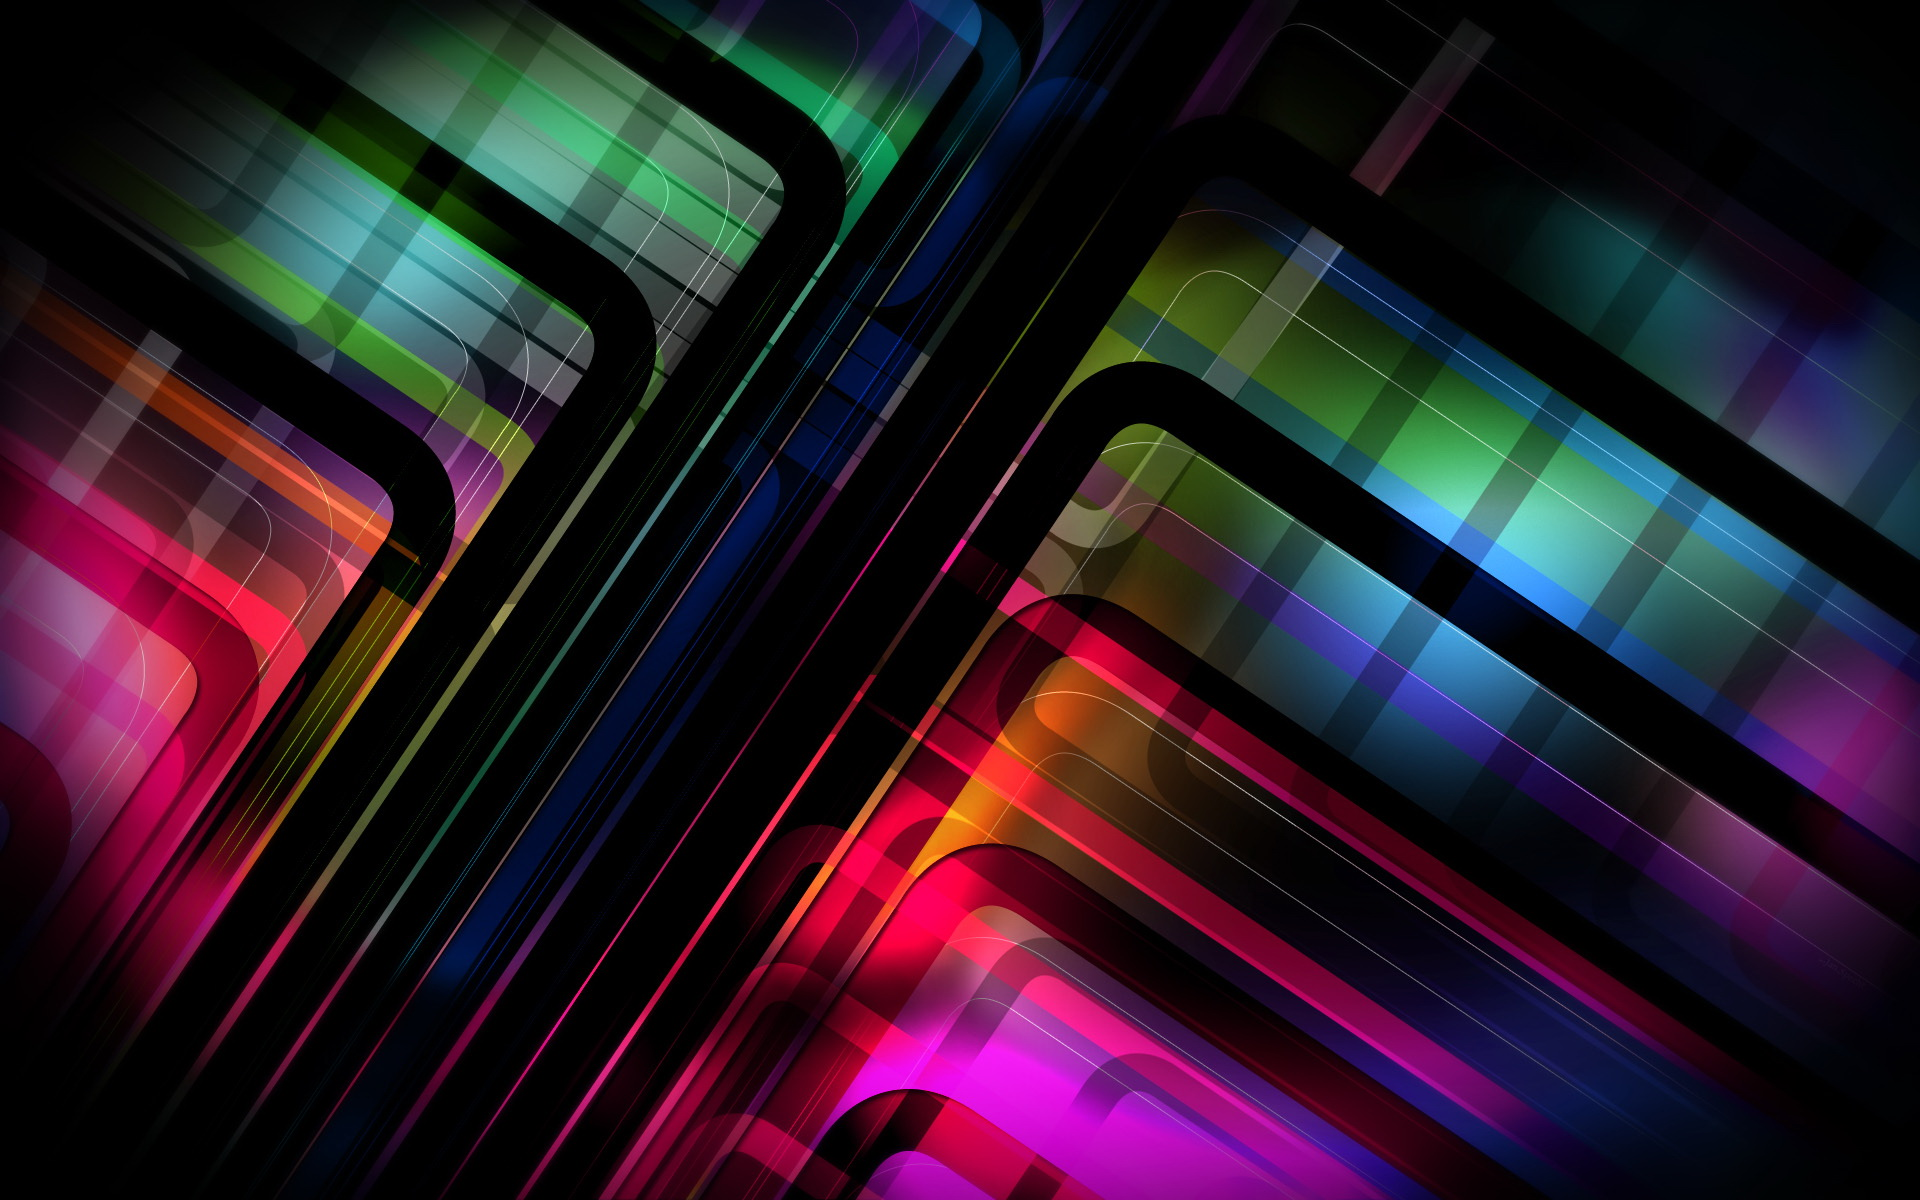 Computer Abstract Wallpapers Desktop Backgrounds 1920x1200px Id 1920x1200